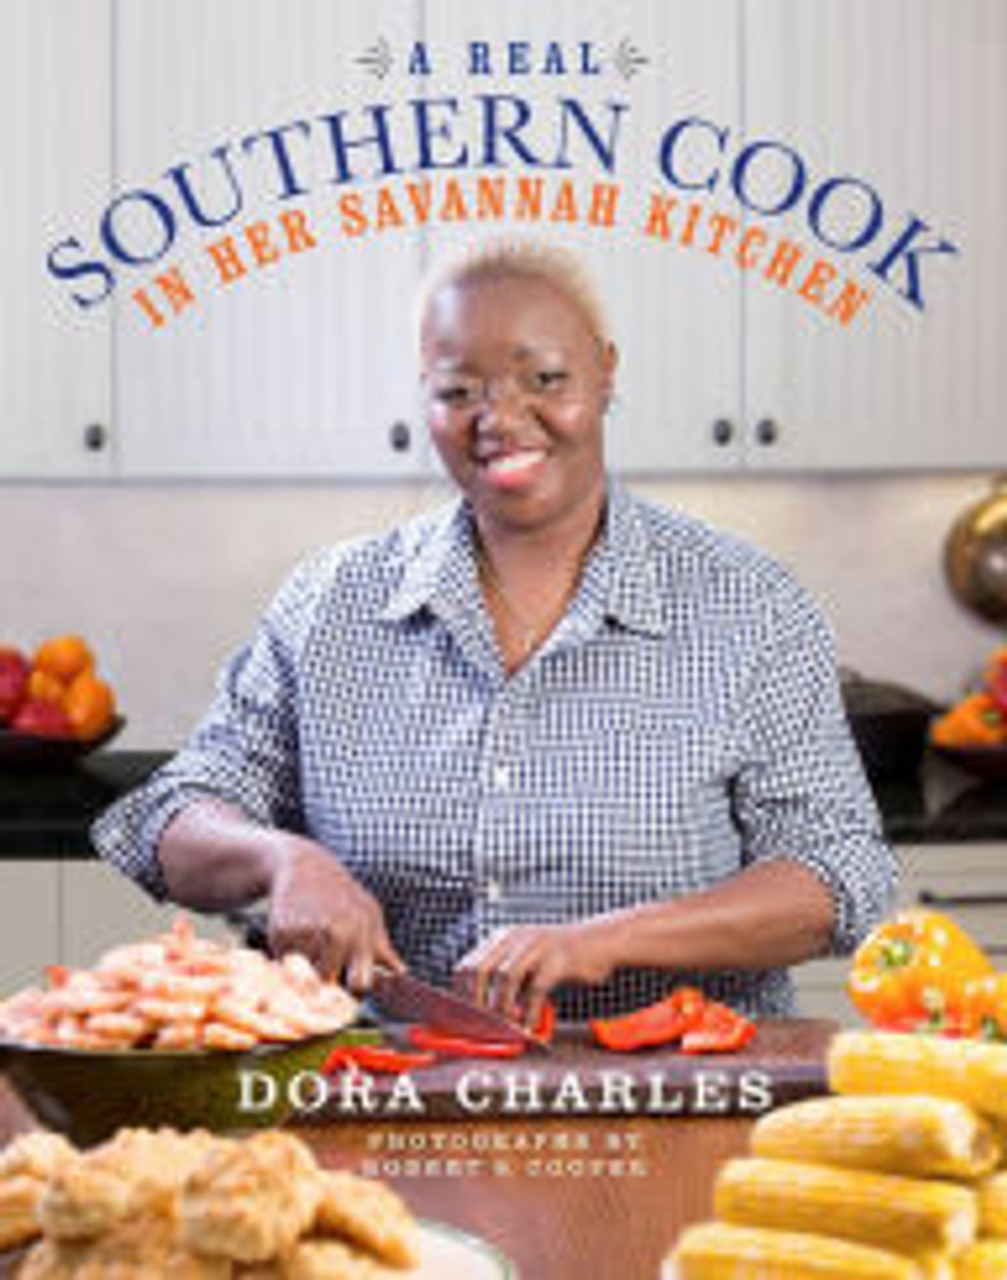 A Real Southern Cook: In Her Savannah Kitchen